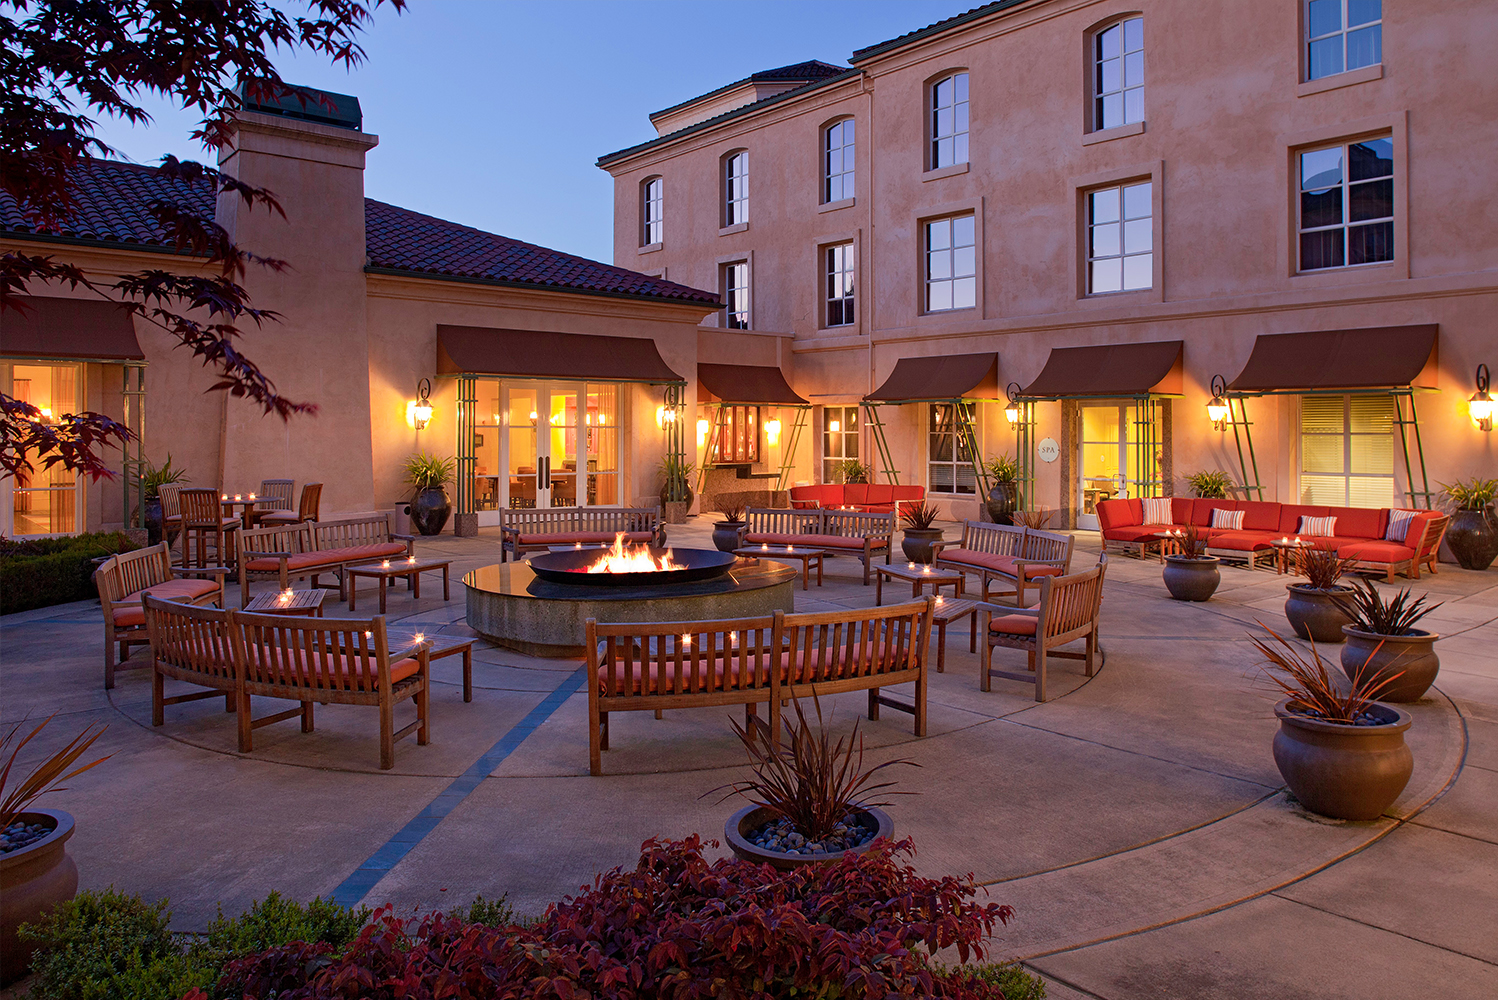 For events, the property has 15 indoor meeting rooms totaling 18,000 square feet; and an additional 20,000 square feet of outdoor space.